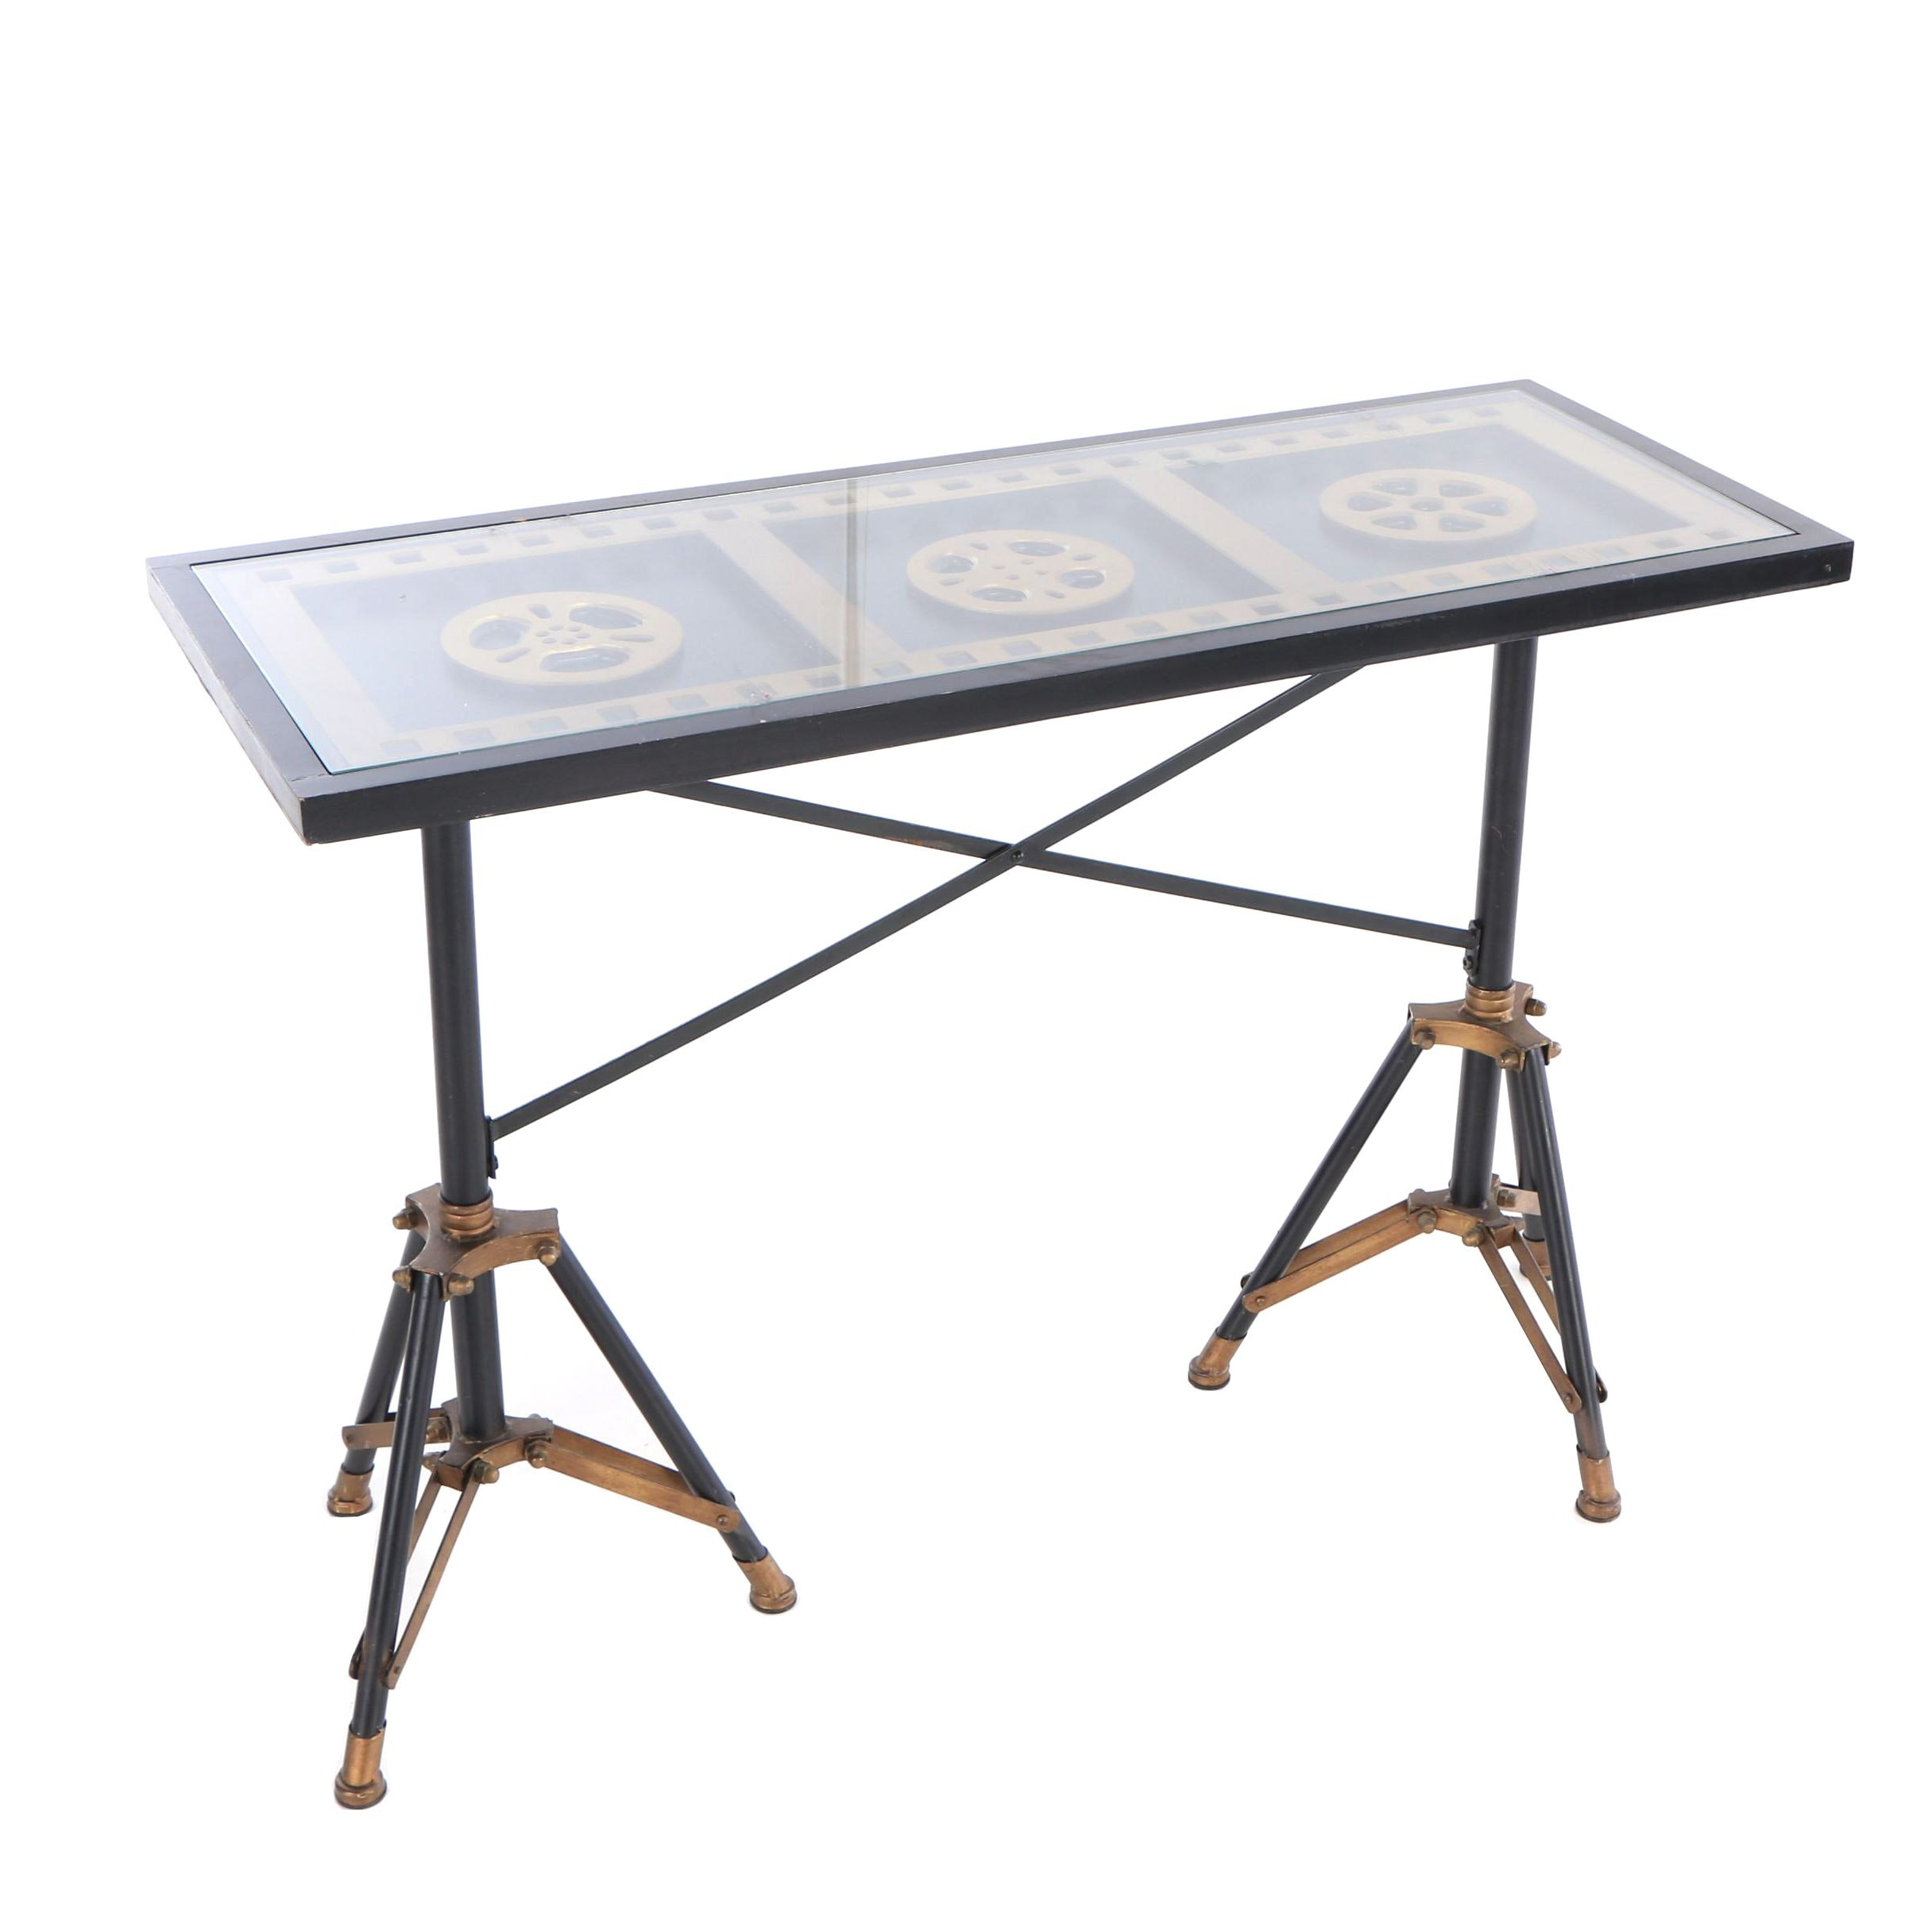 Contemporary Industrial Style Console Table with Film Reel Theme